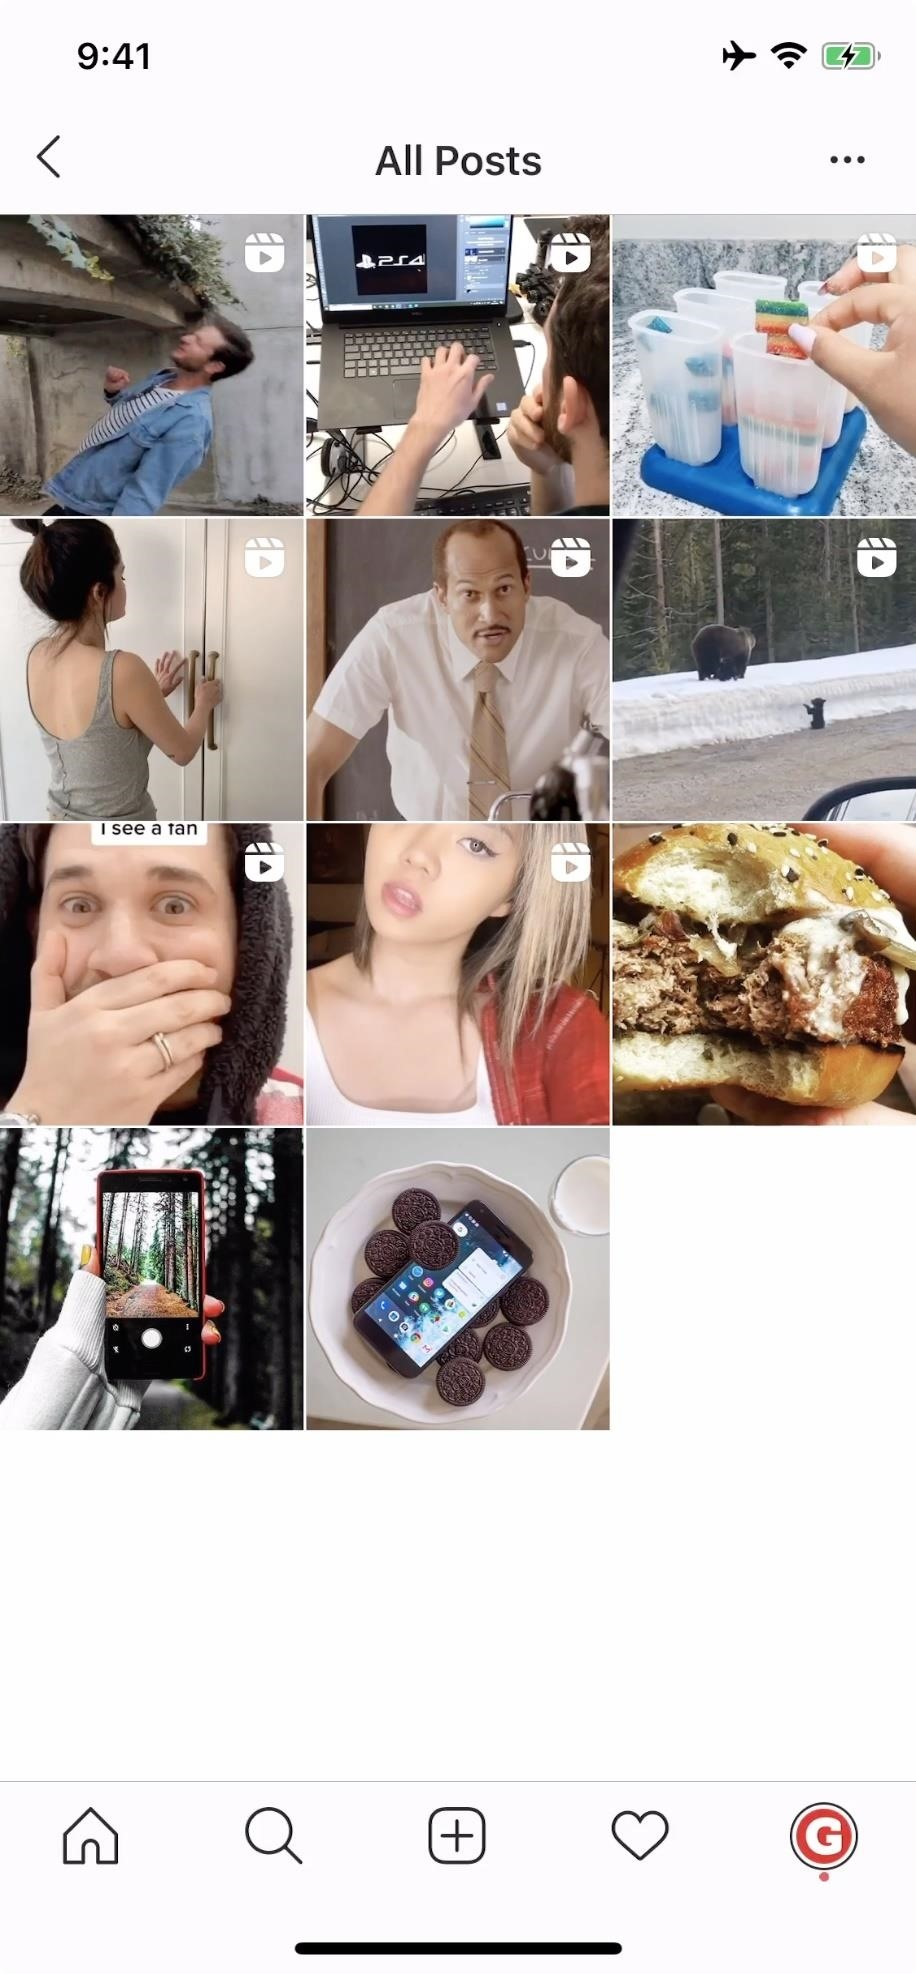 How to Find All the Reels You Liked & Saved on Instagram